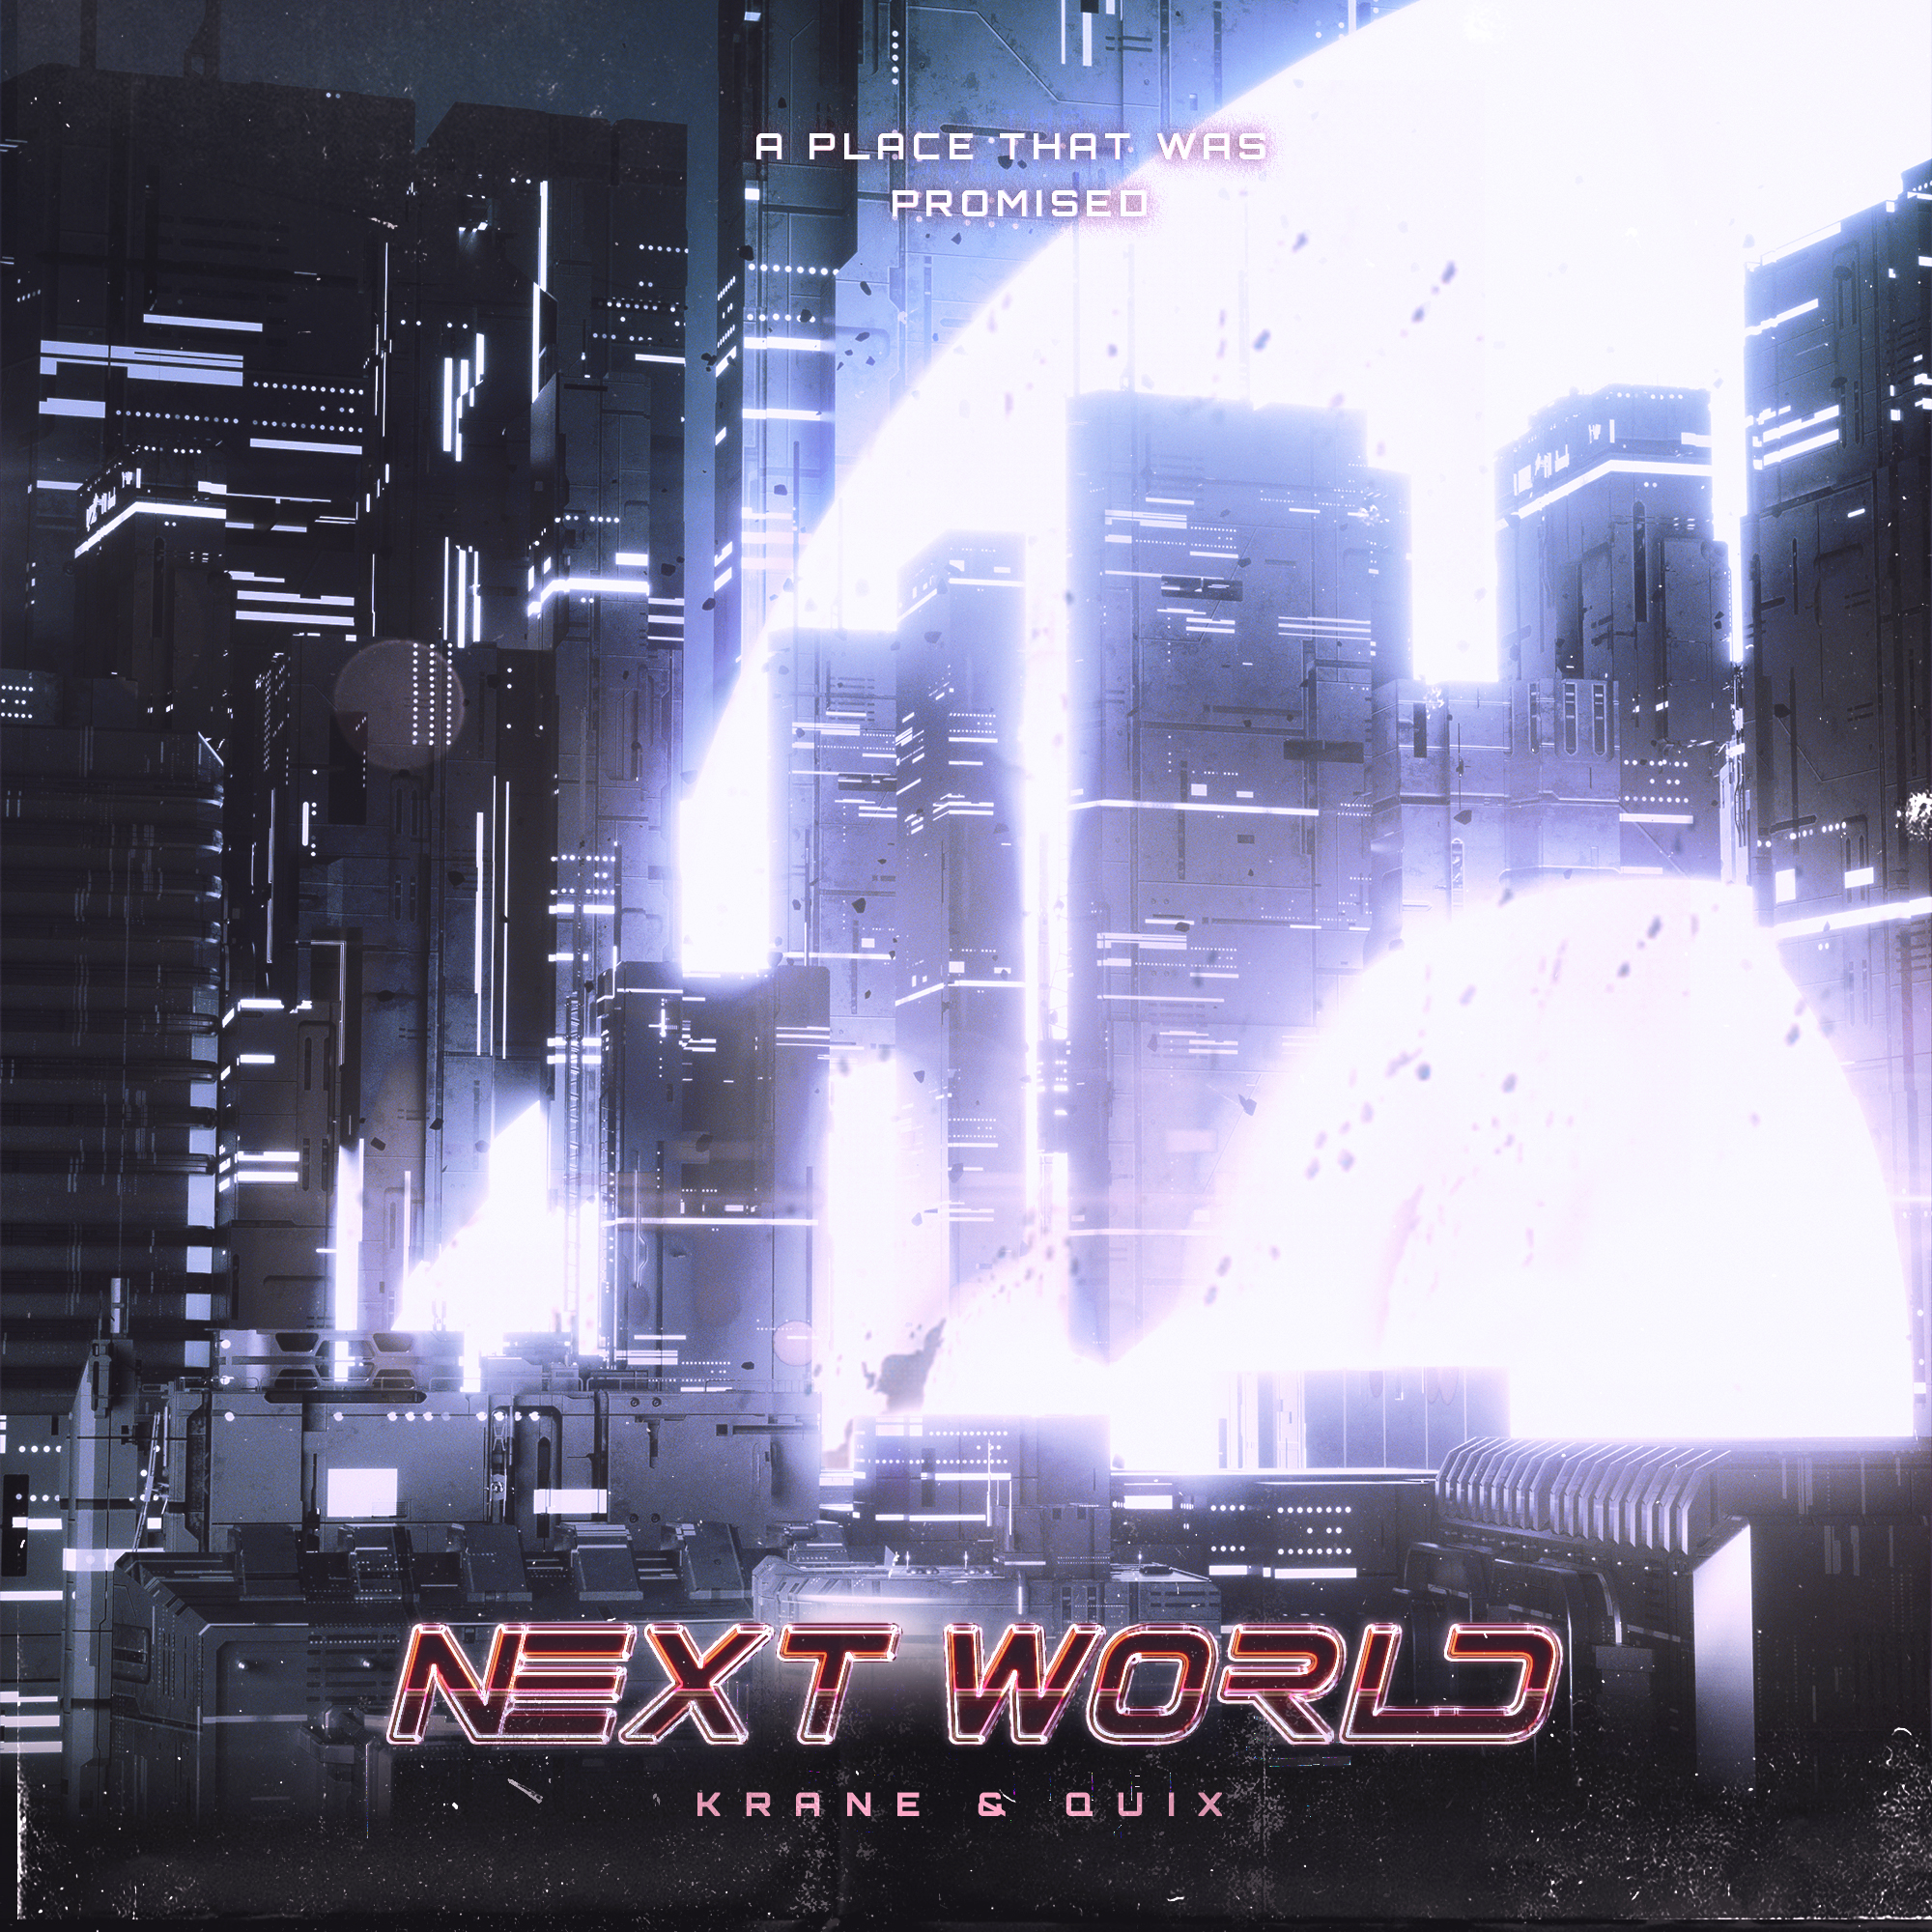 NEXT WORLD (SINGLE COVER) -